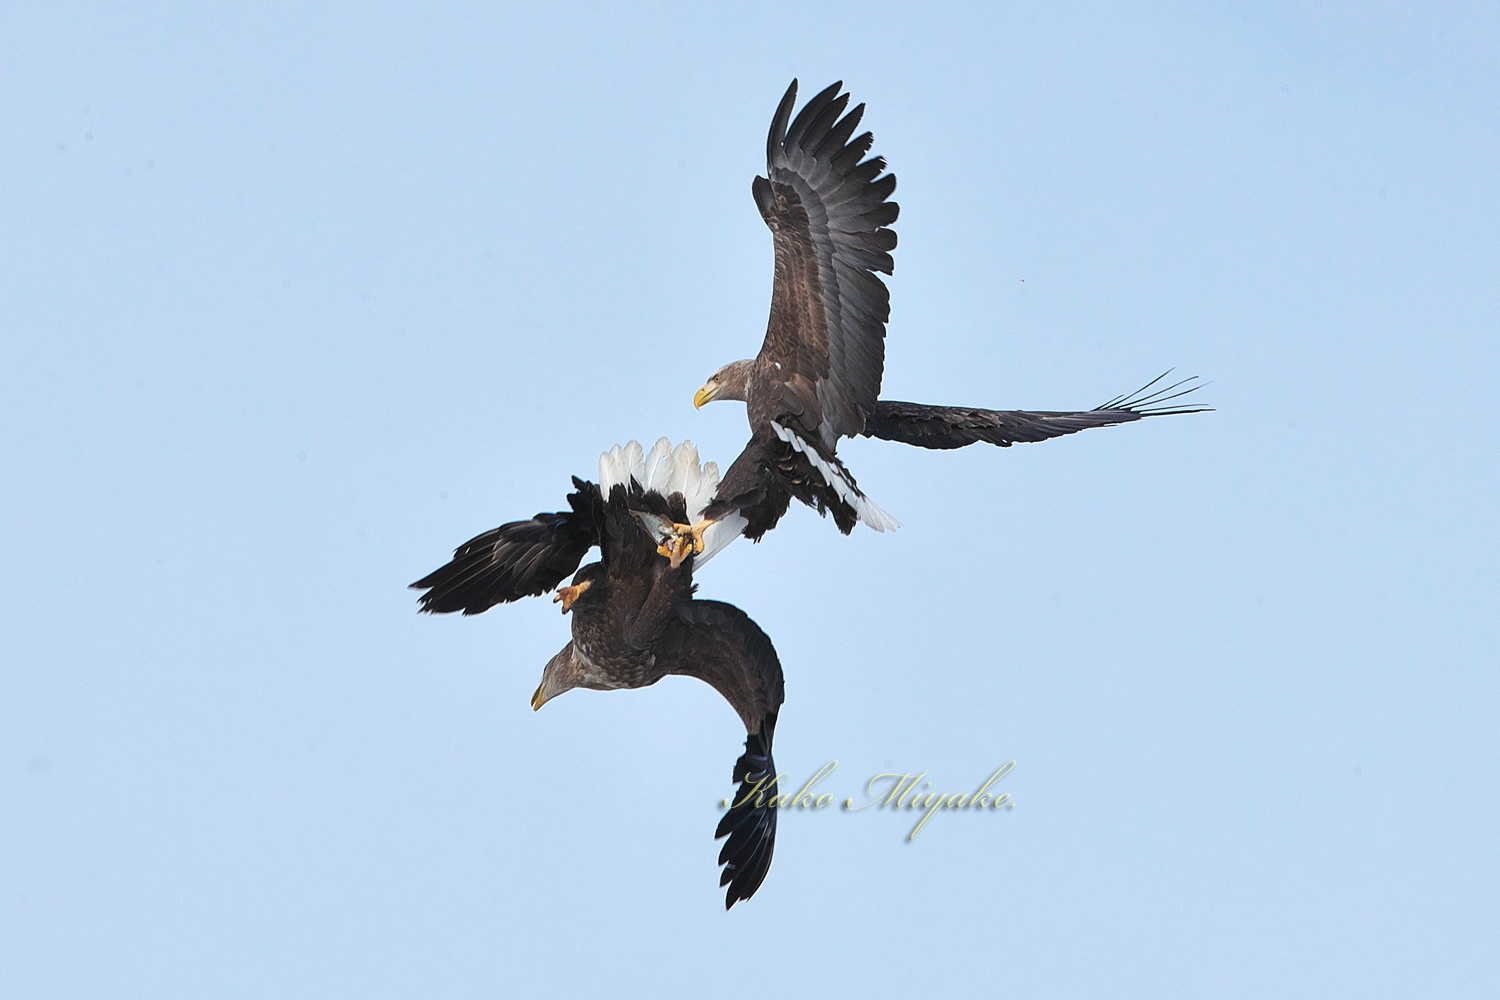 オオワシ(Steller\'s sea eagle )とオジロワシ(White-tailed eagle)_d0013455_11192666.jpg